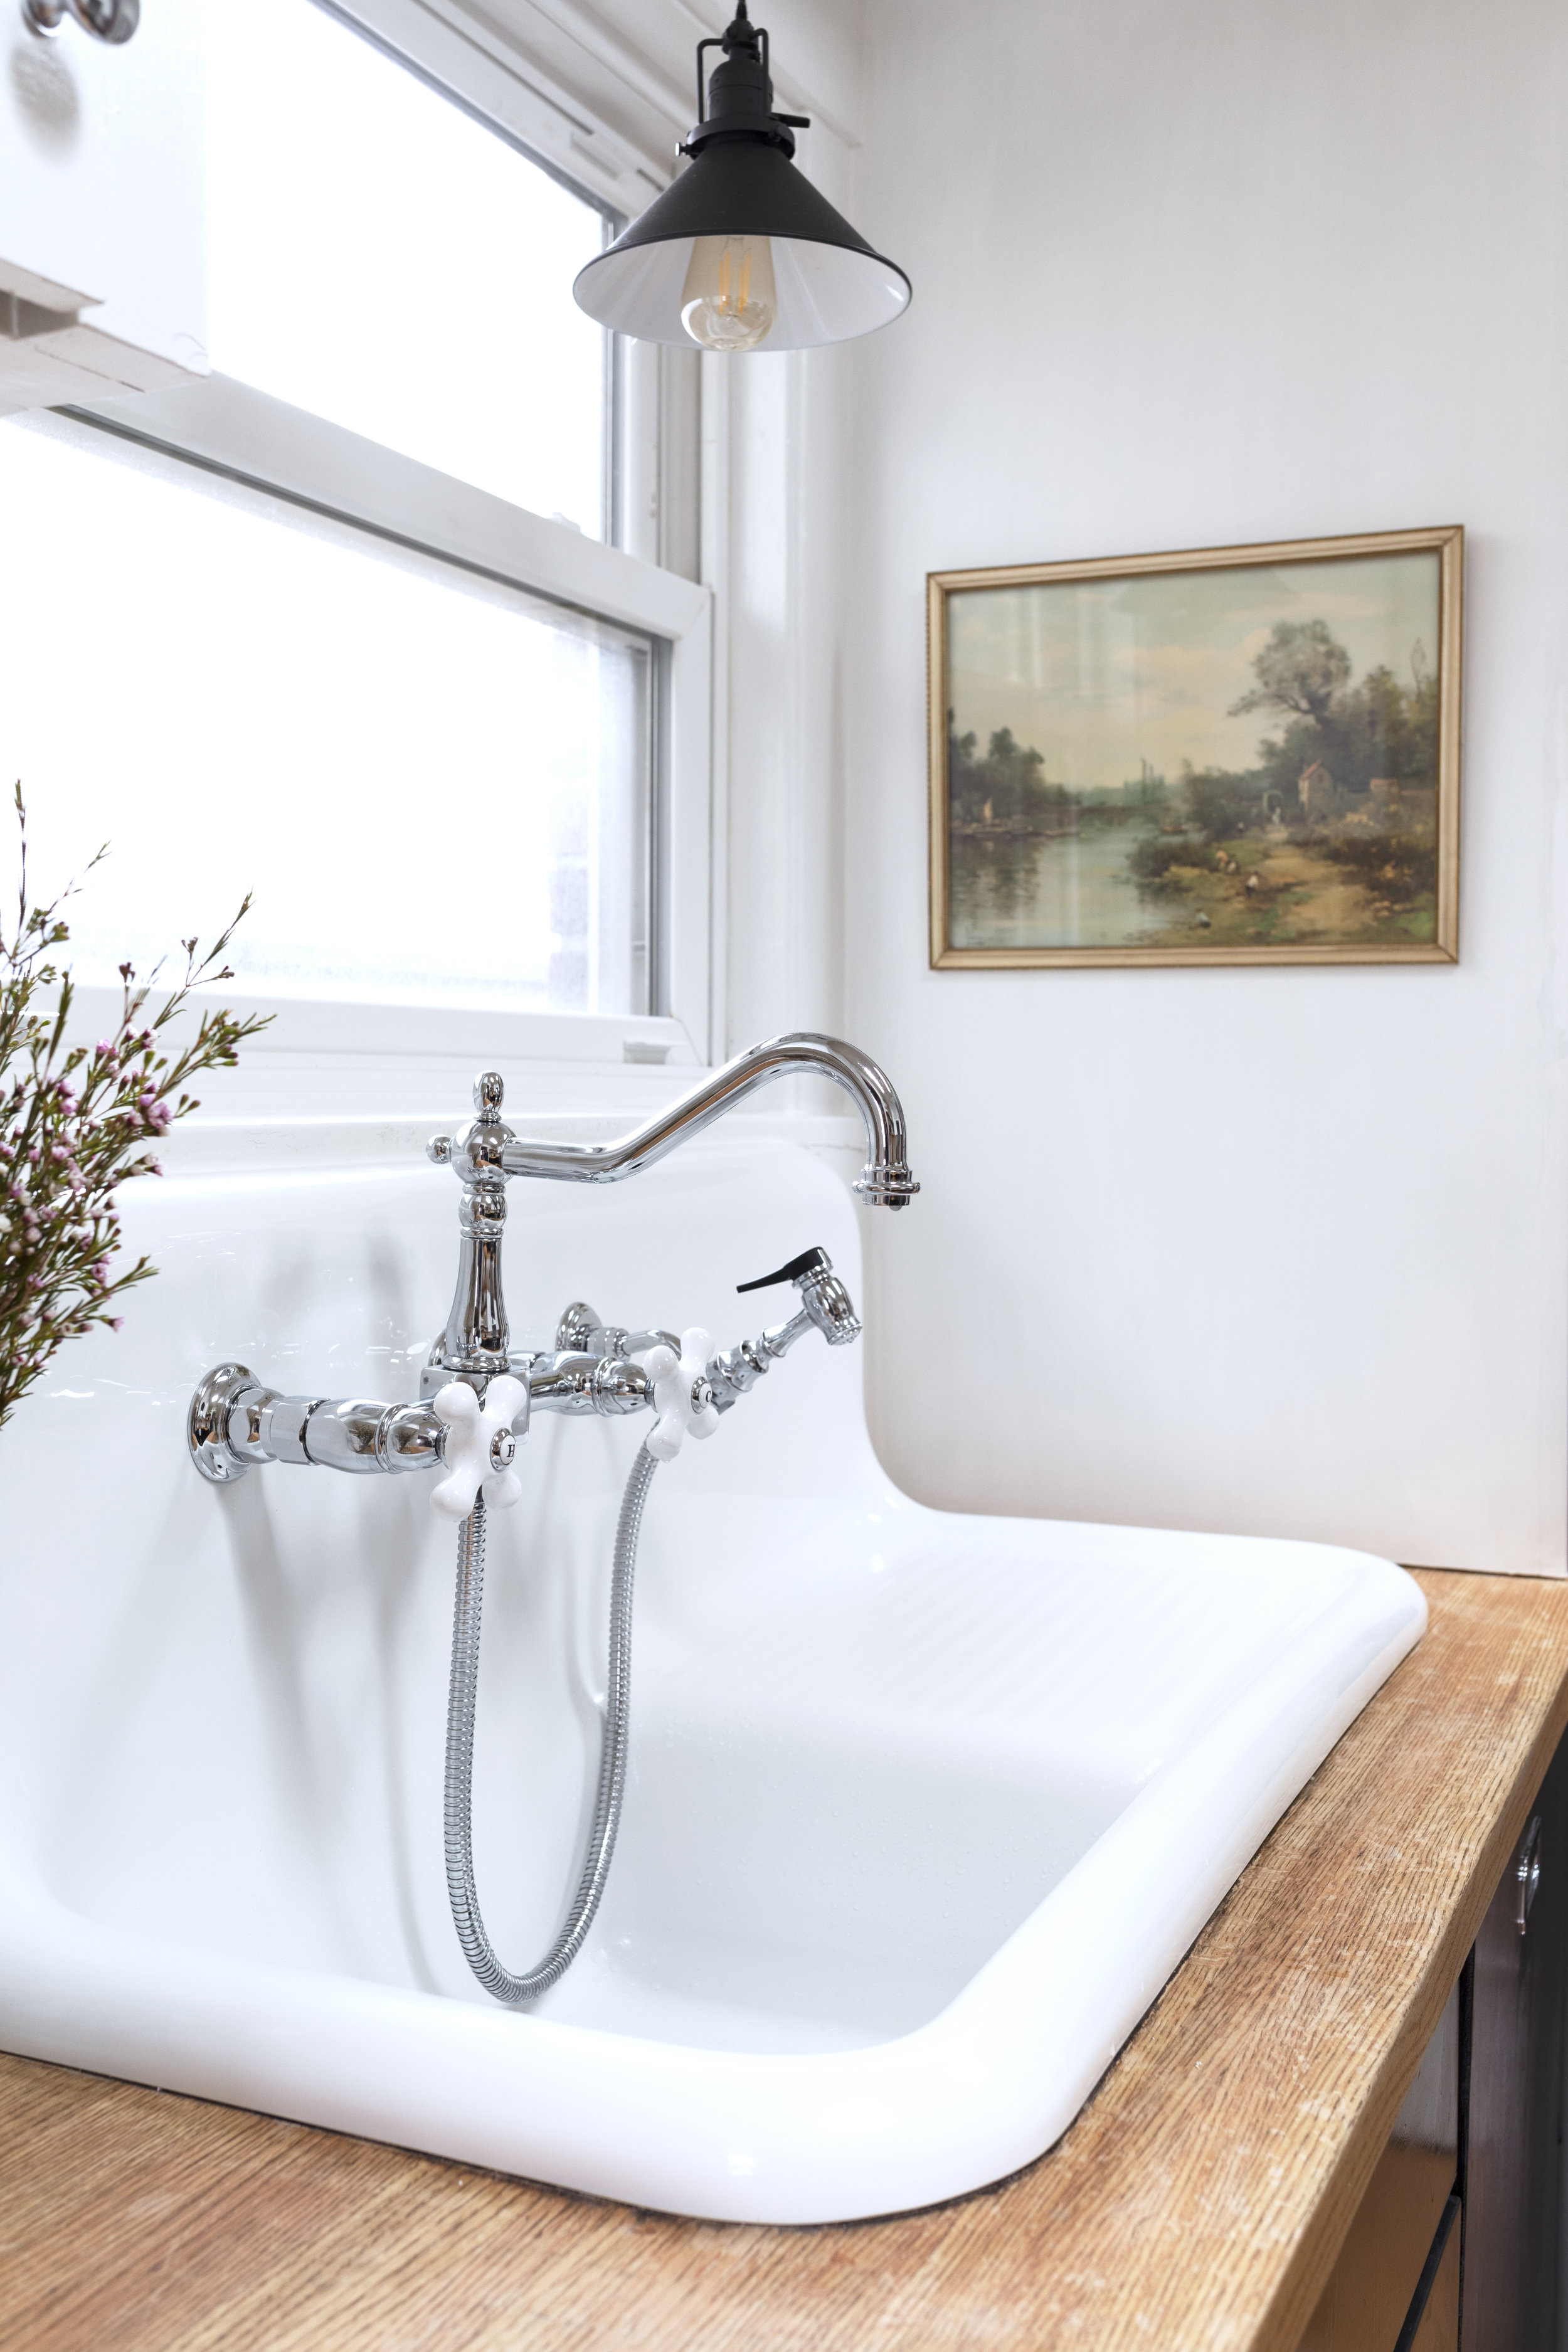 Replica vintage sink and faucet at the Dexter House Kitchen // the Grit and Polish